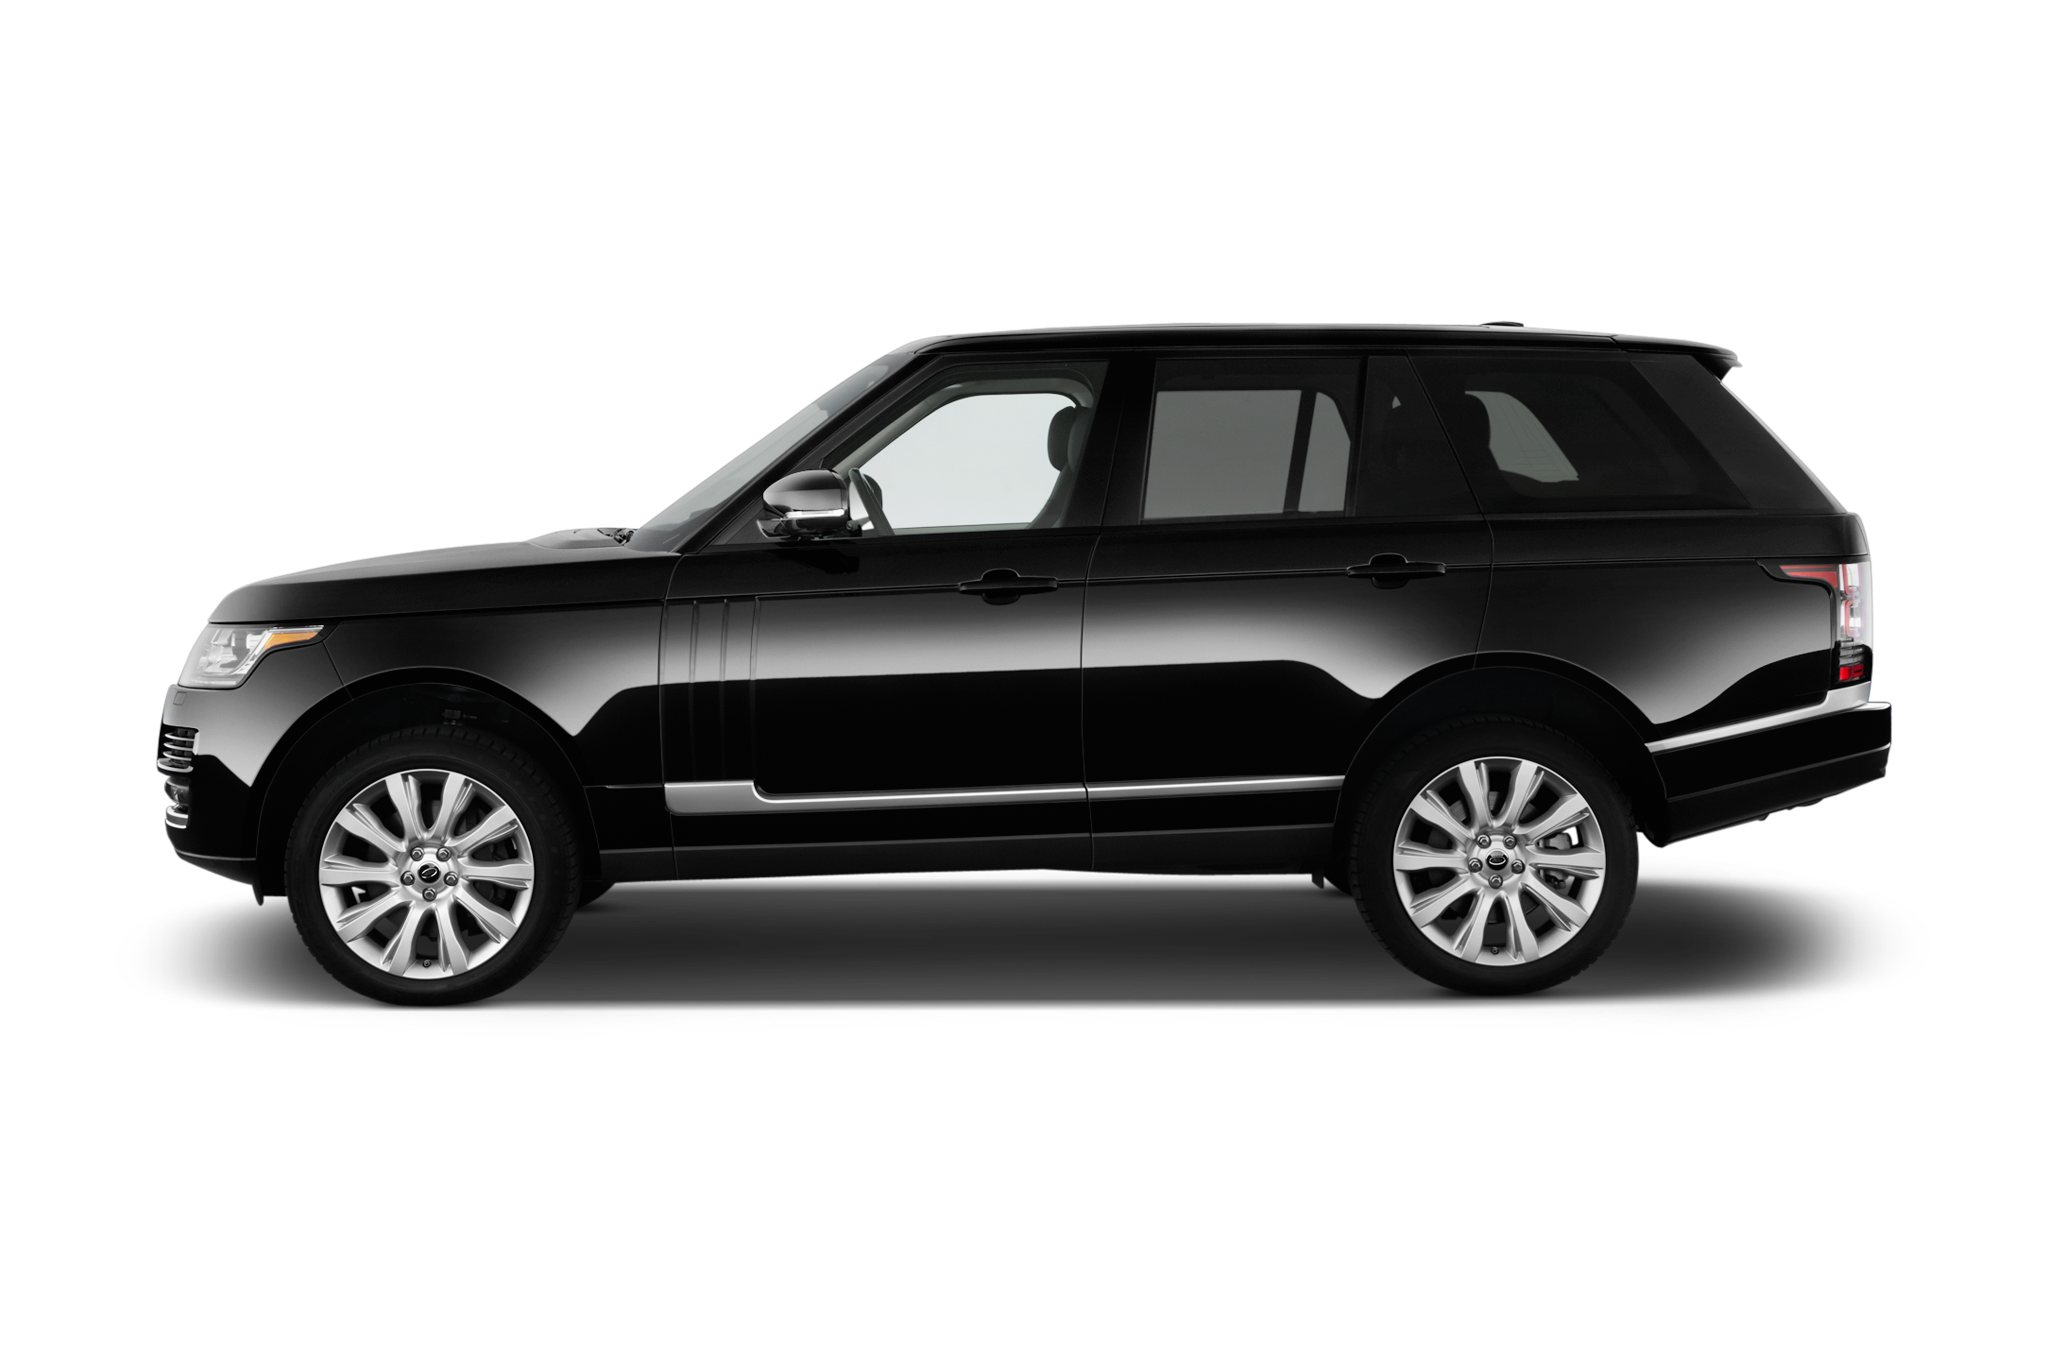 banner freeuse stock Land rover png image. 4 wheel drive clipart.